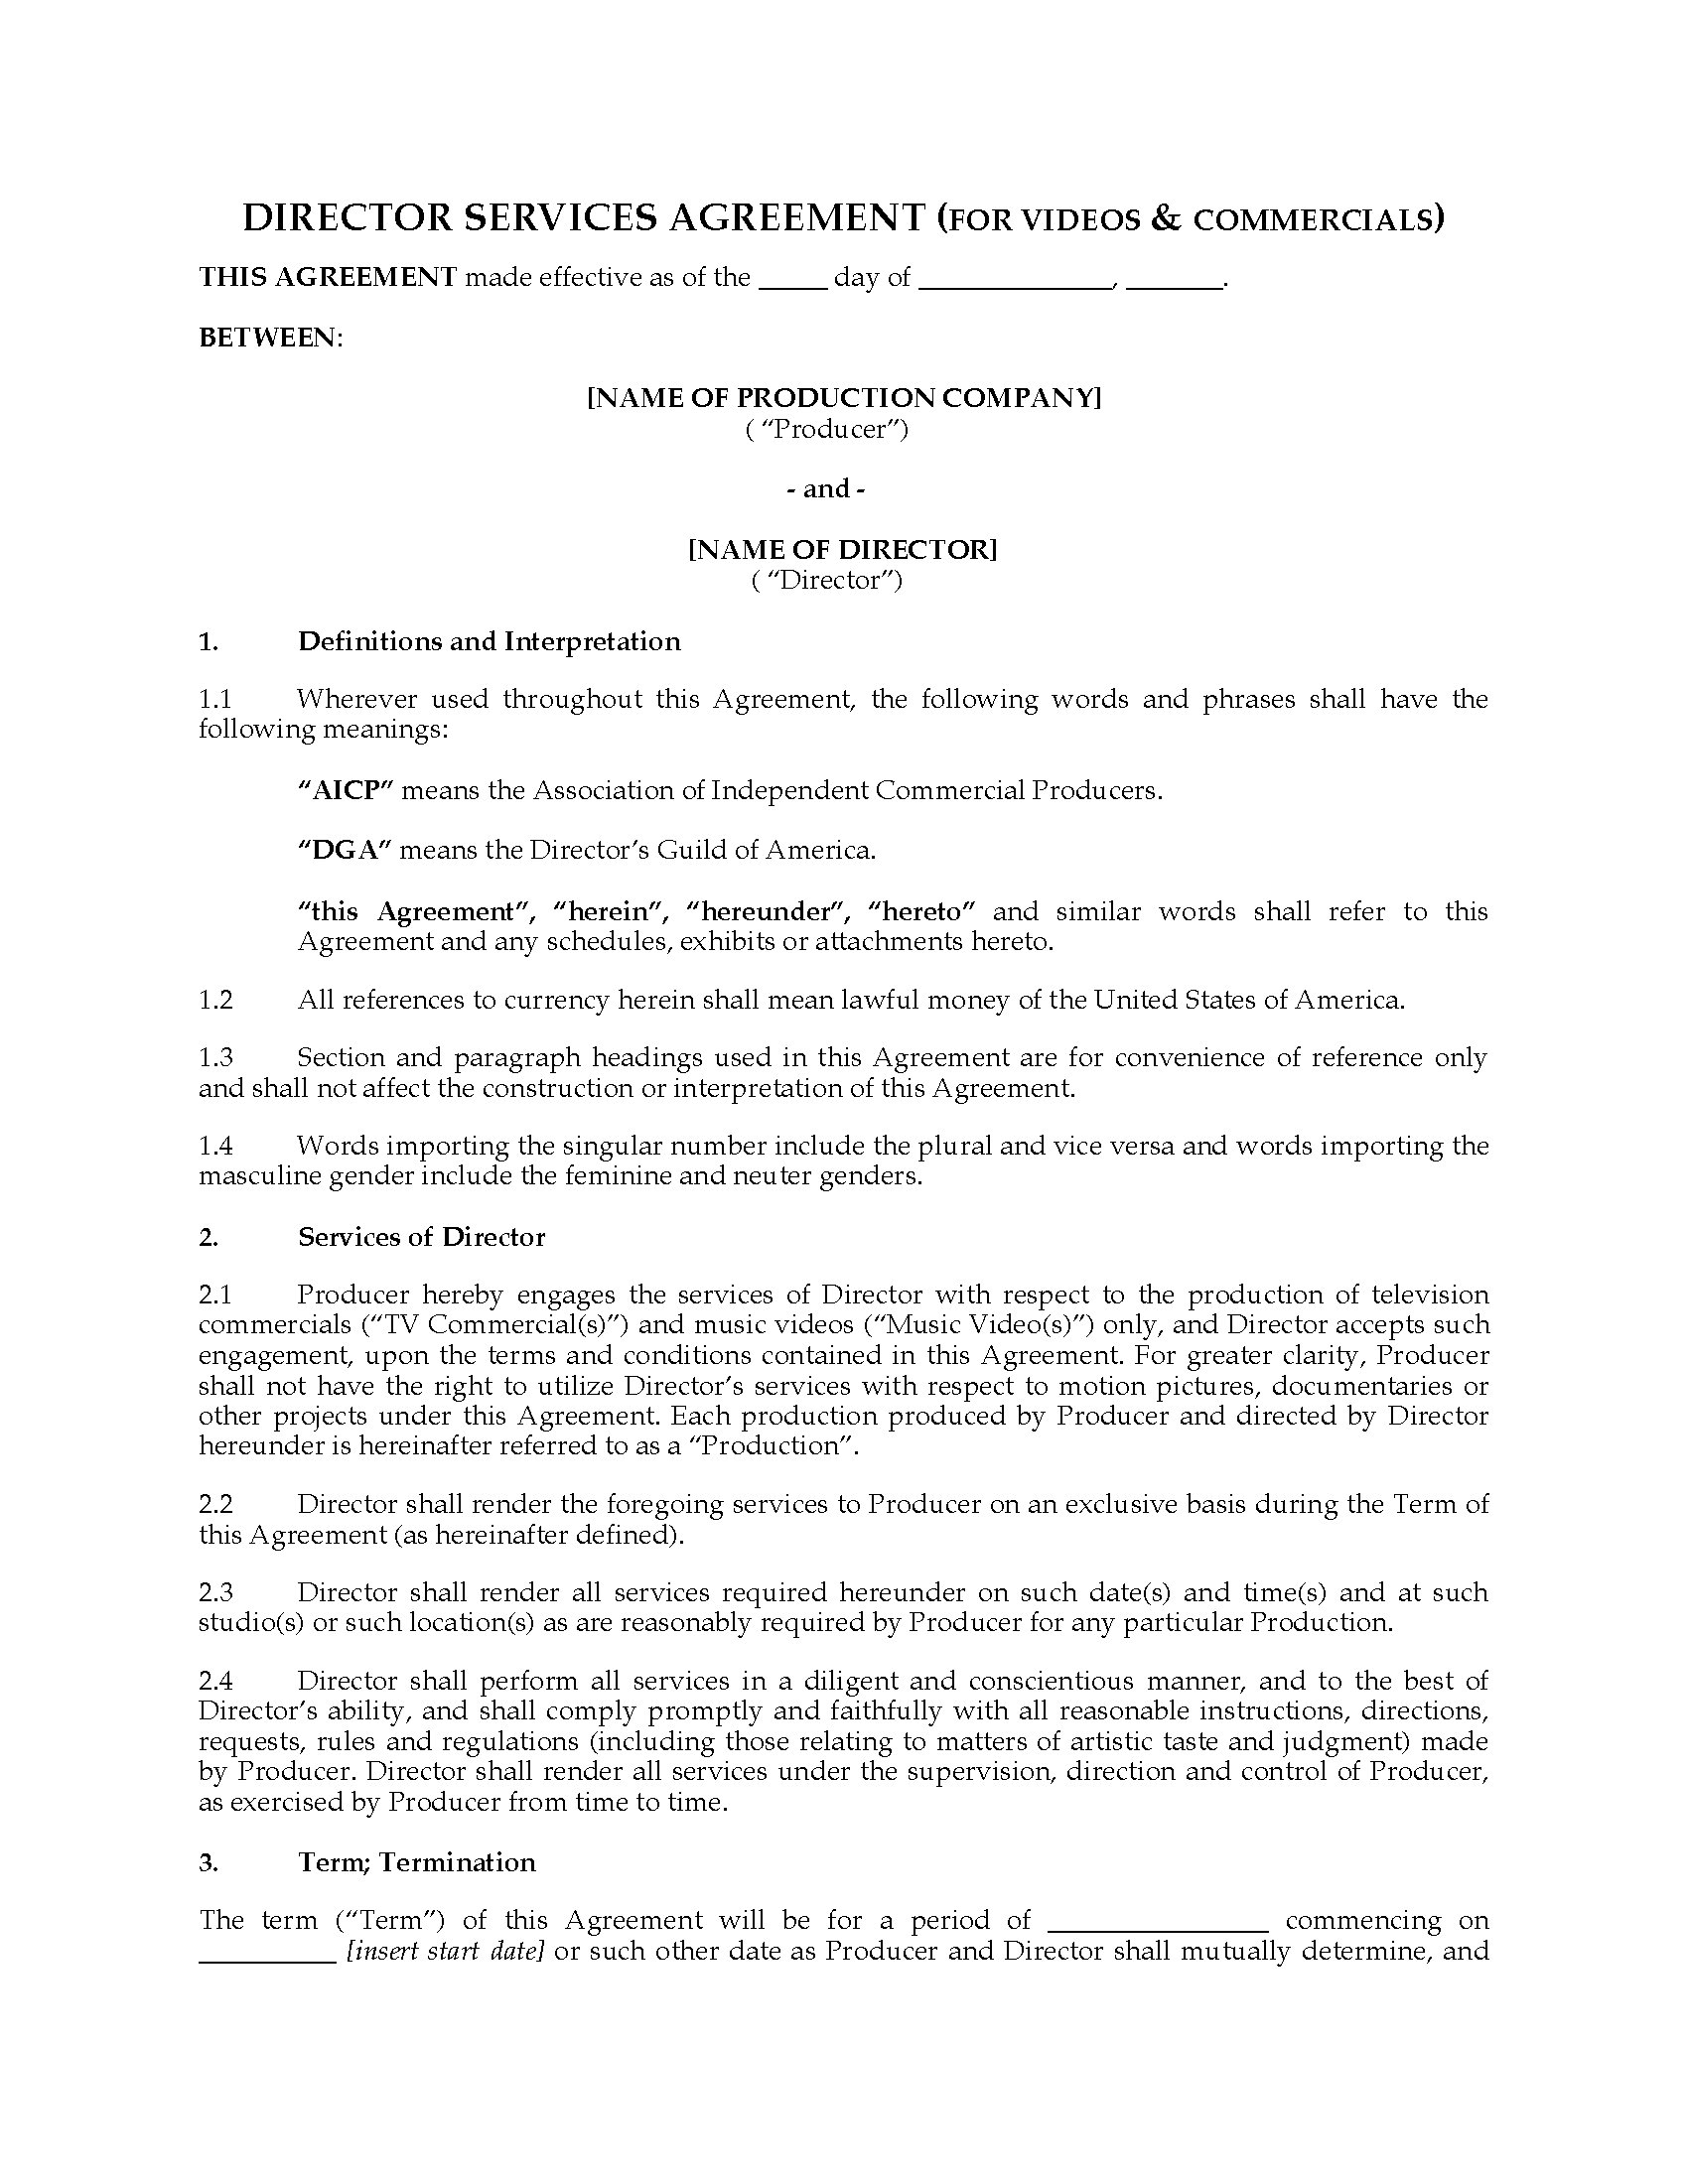 USA Director Agreement For Video Or Mercial